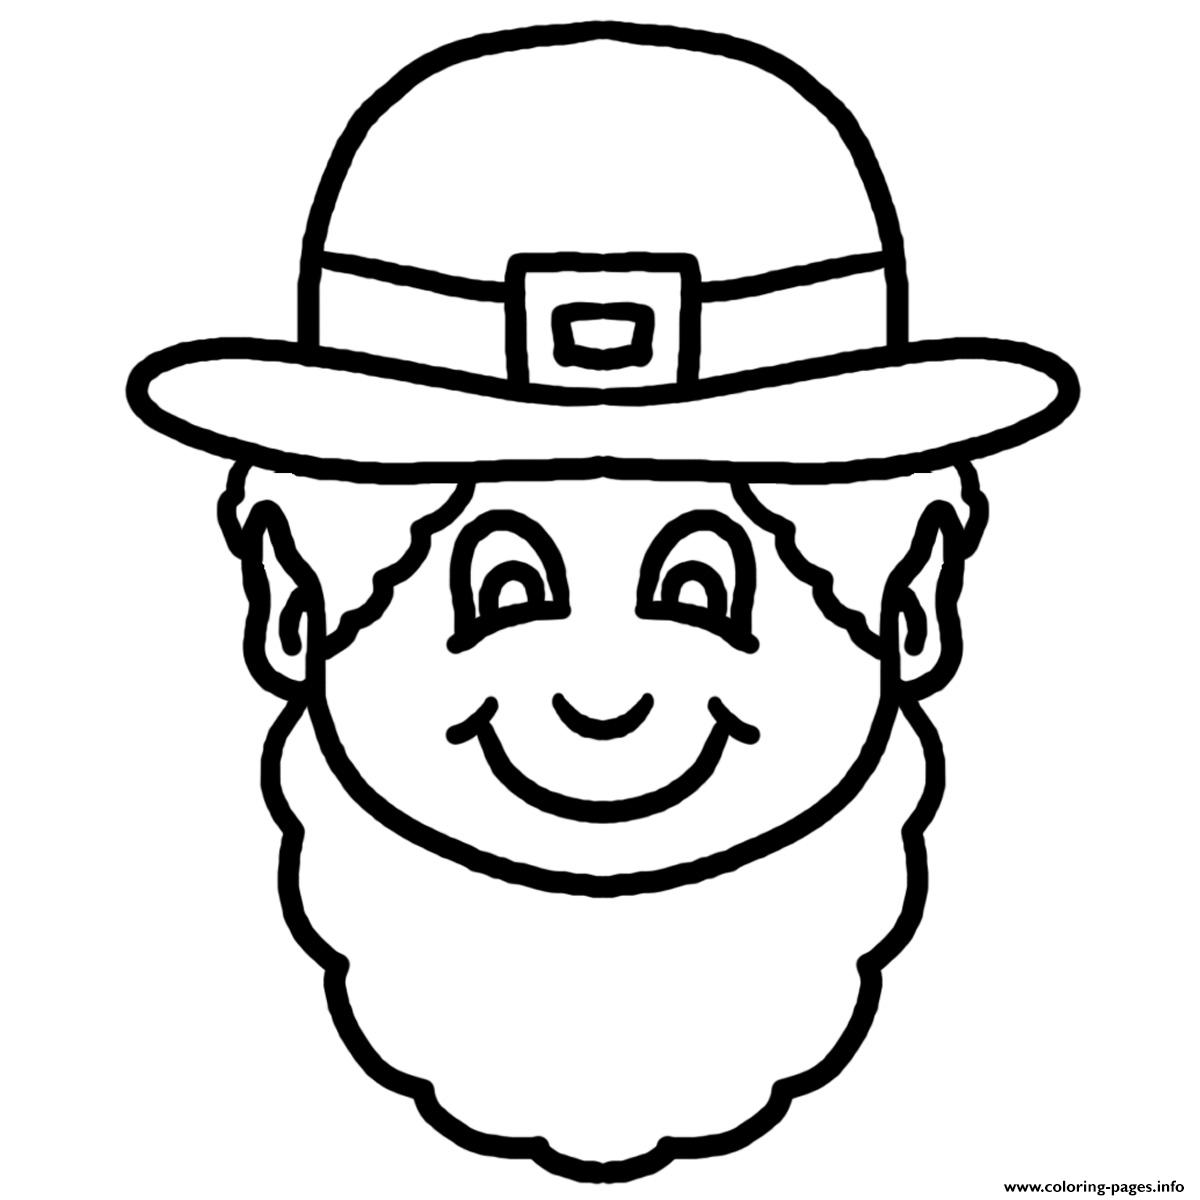 This Black And White Cartoon Leprechaun Face Clipart.